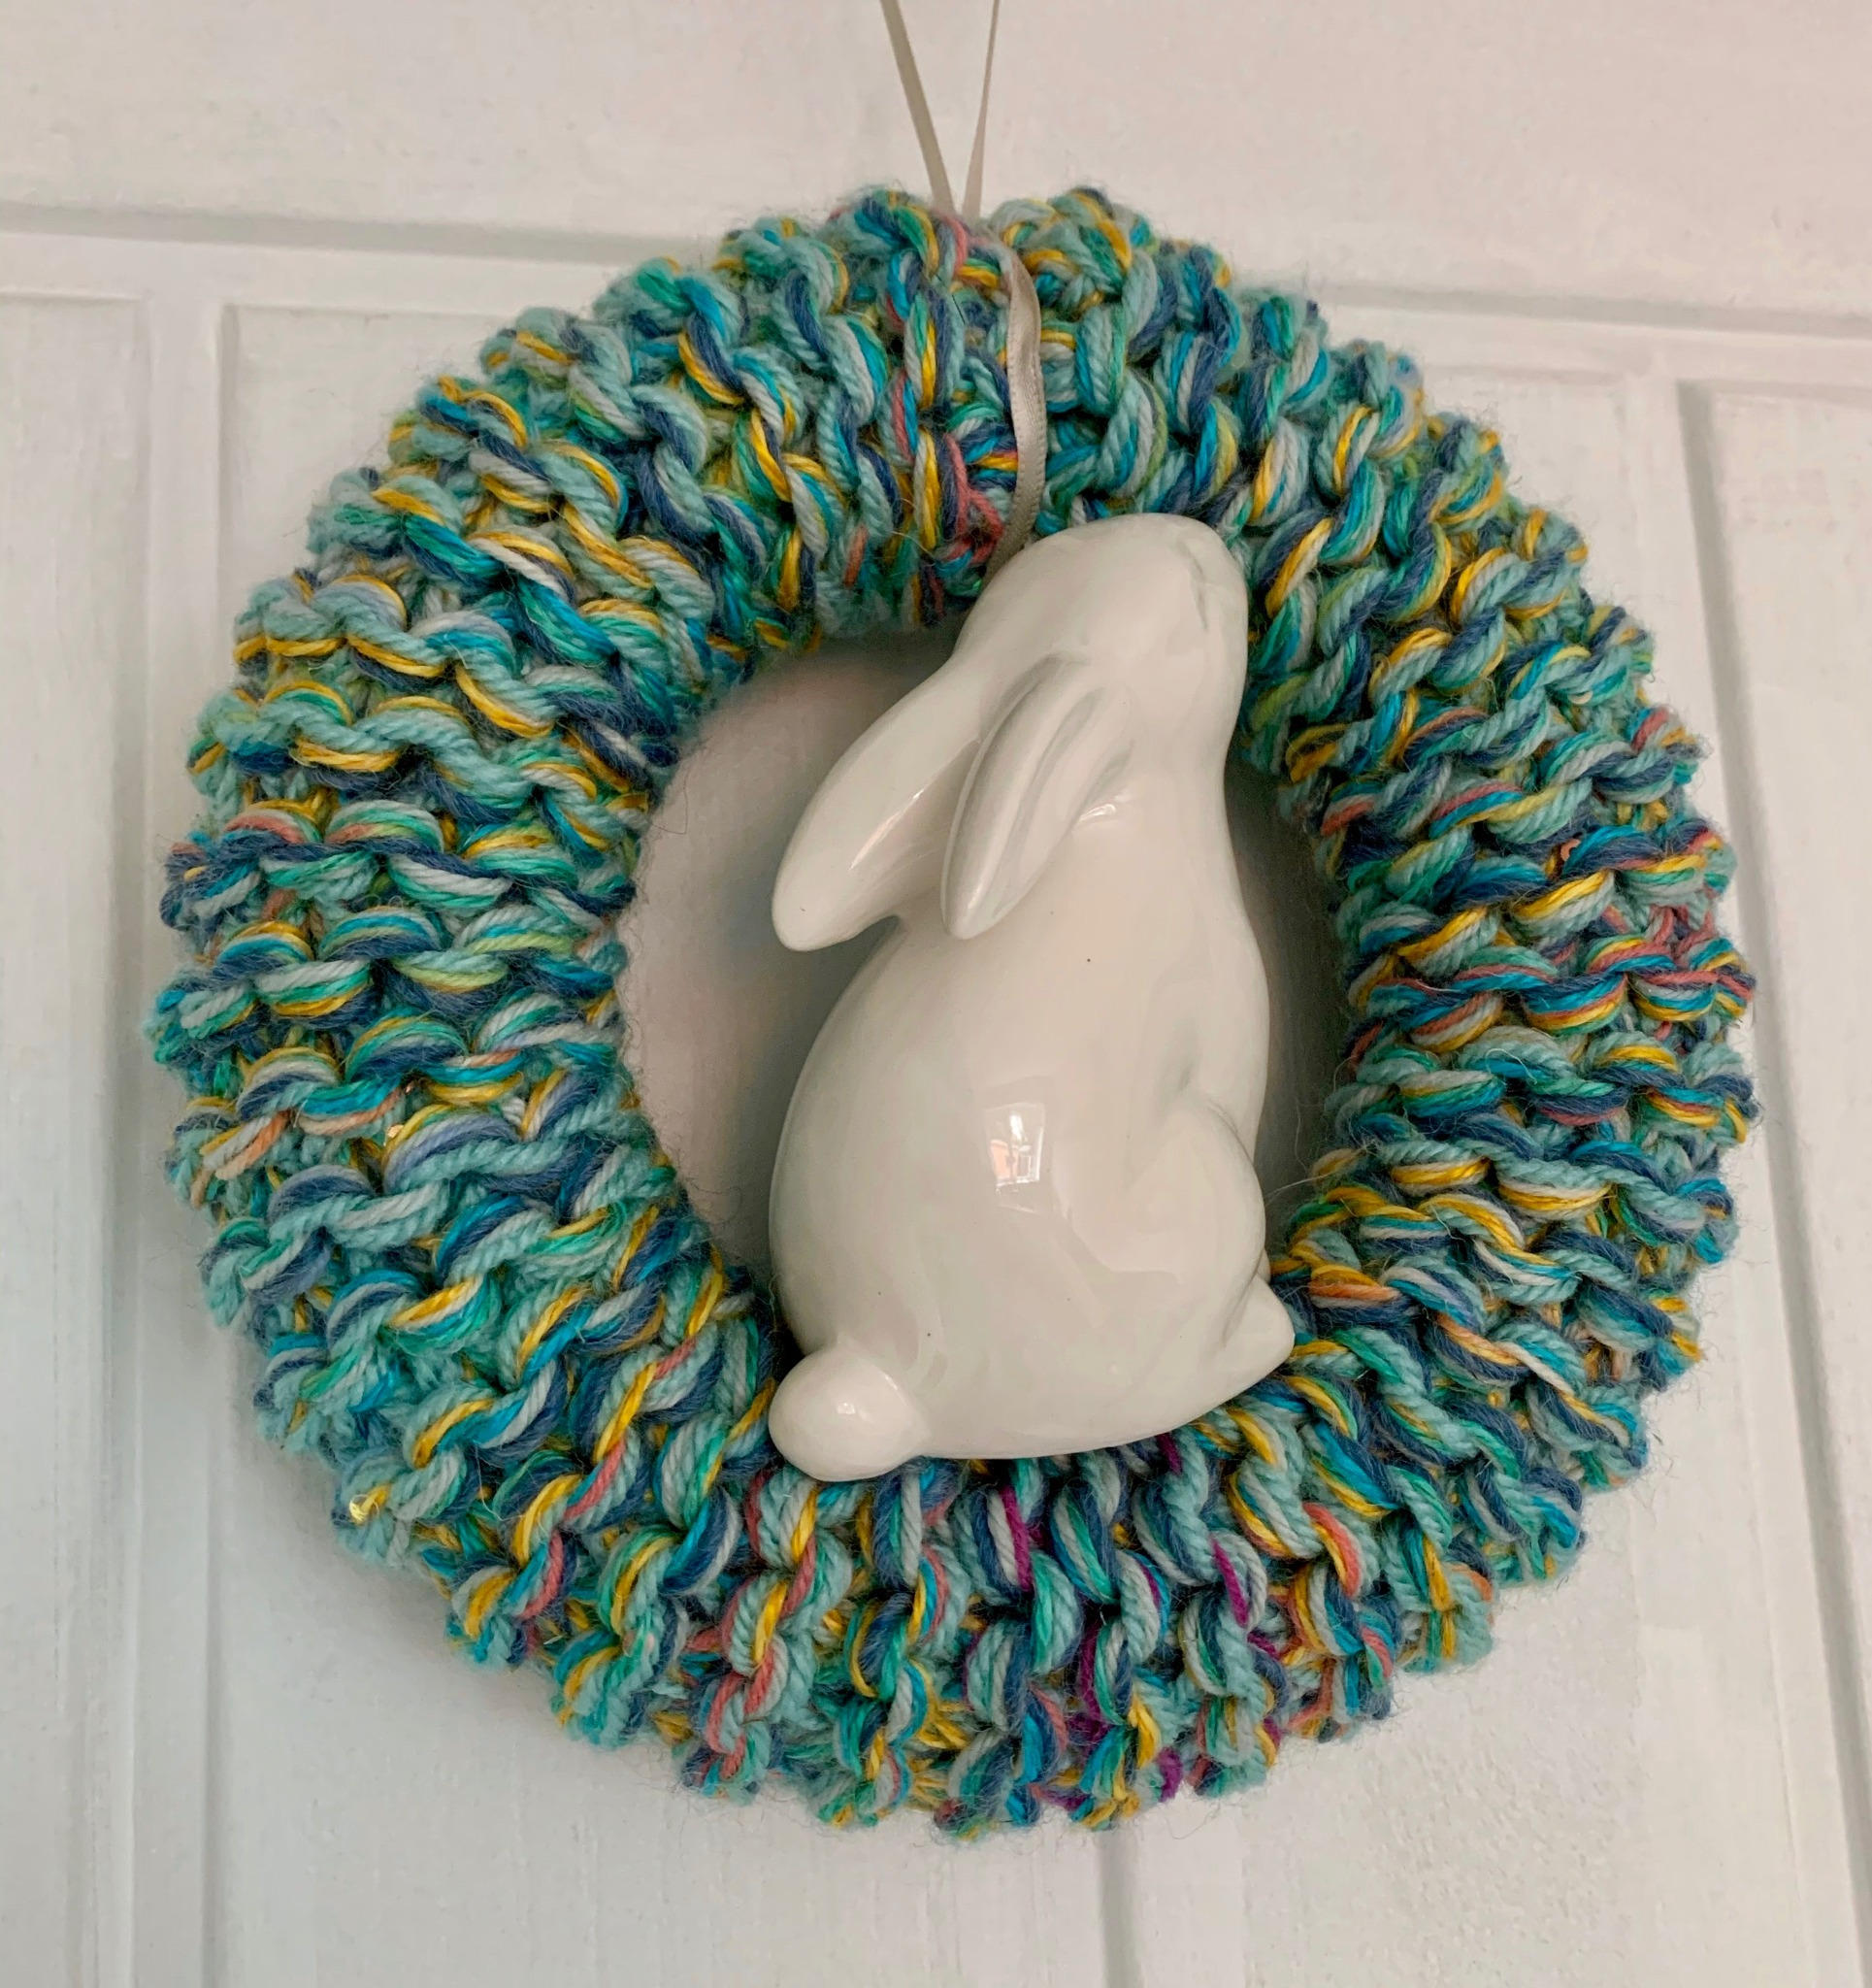 Hand Knitted Easter Bunny Wreath, Blue